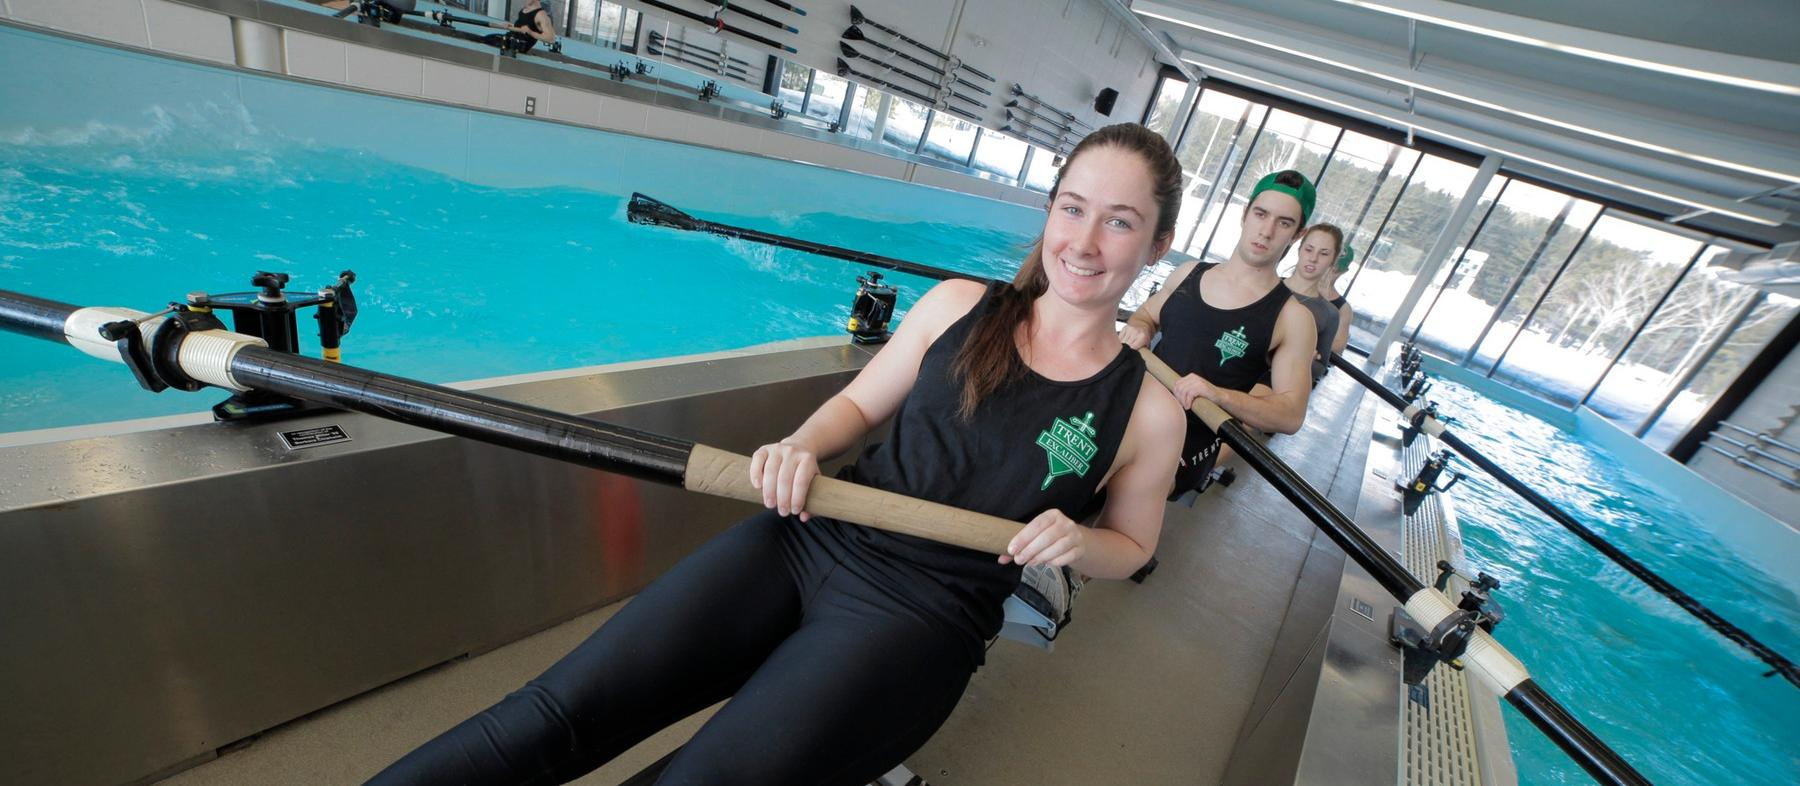 A group of varsity athletes row in the indoor rowing tank at Trent University.